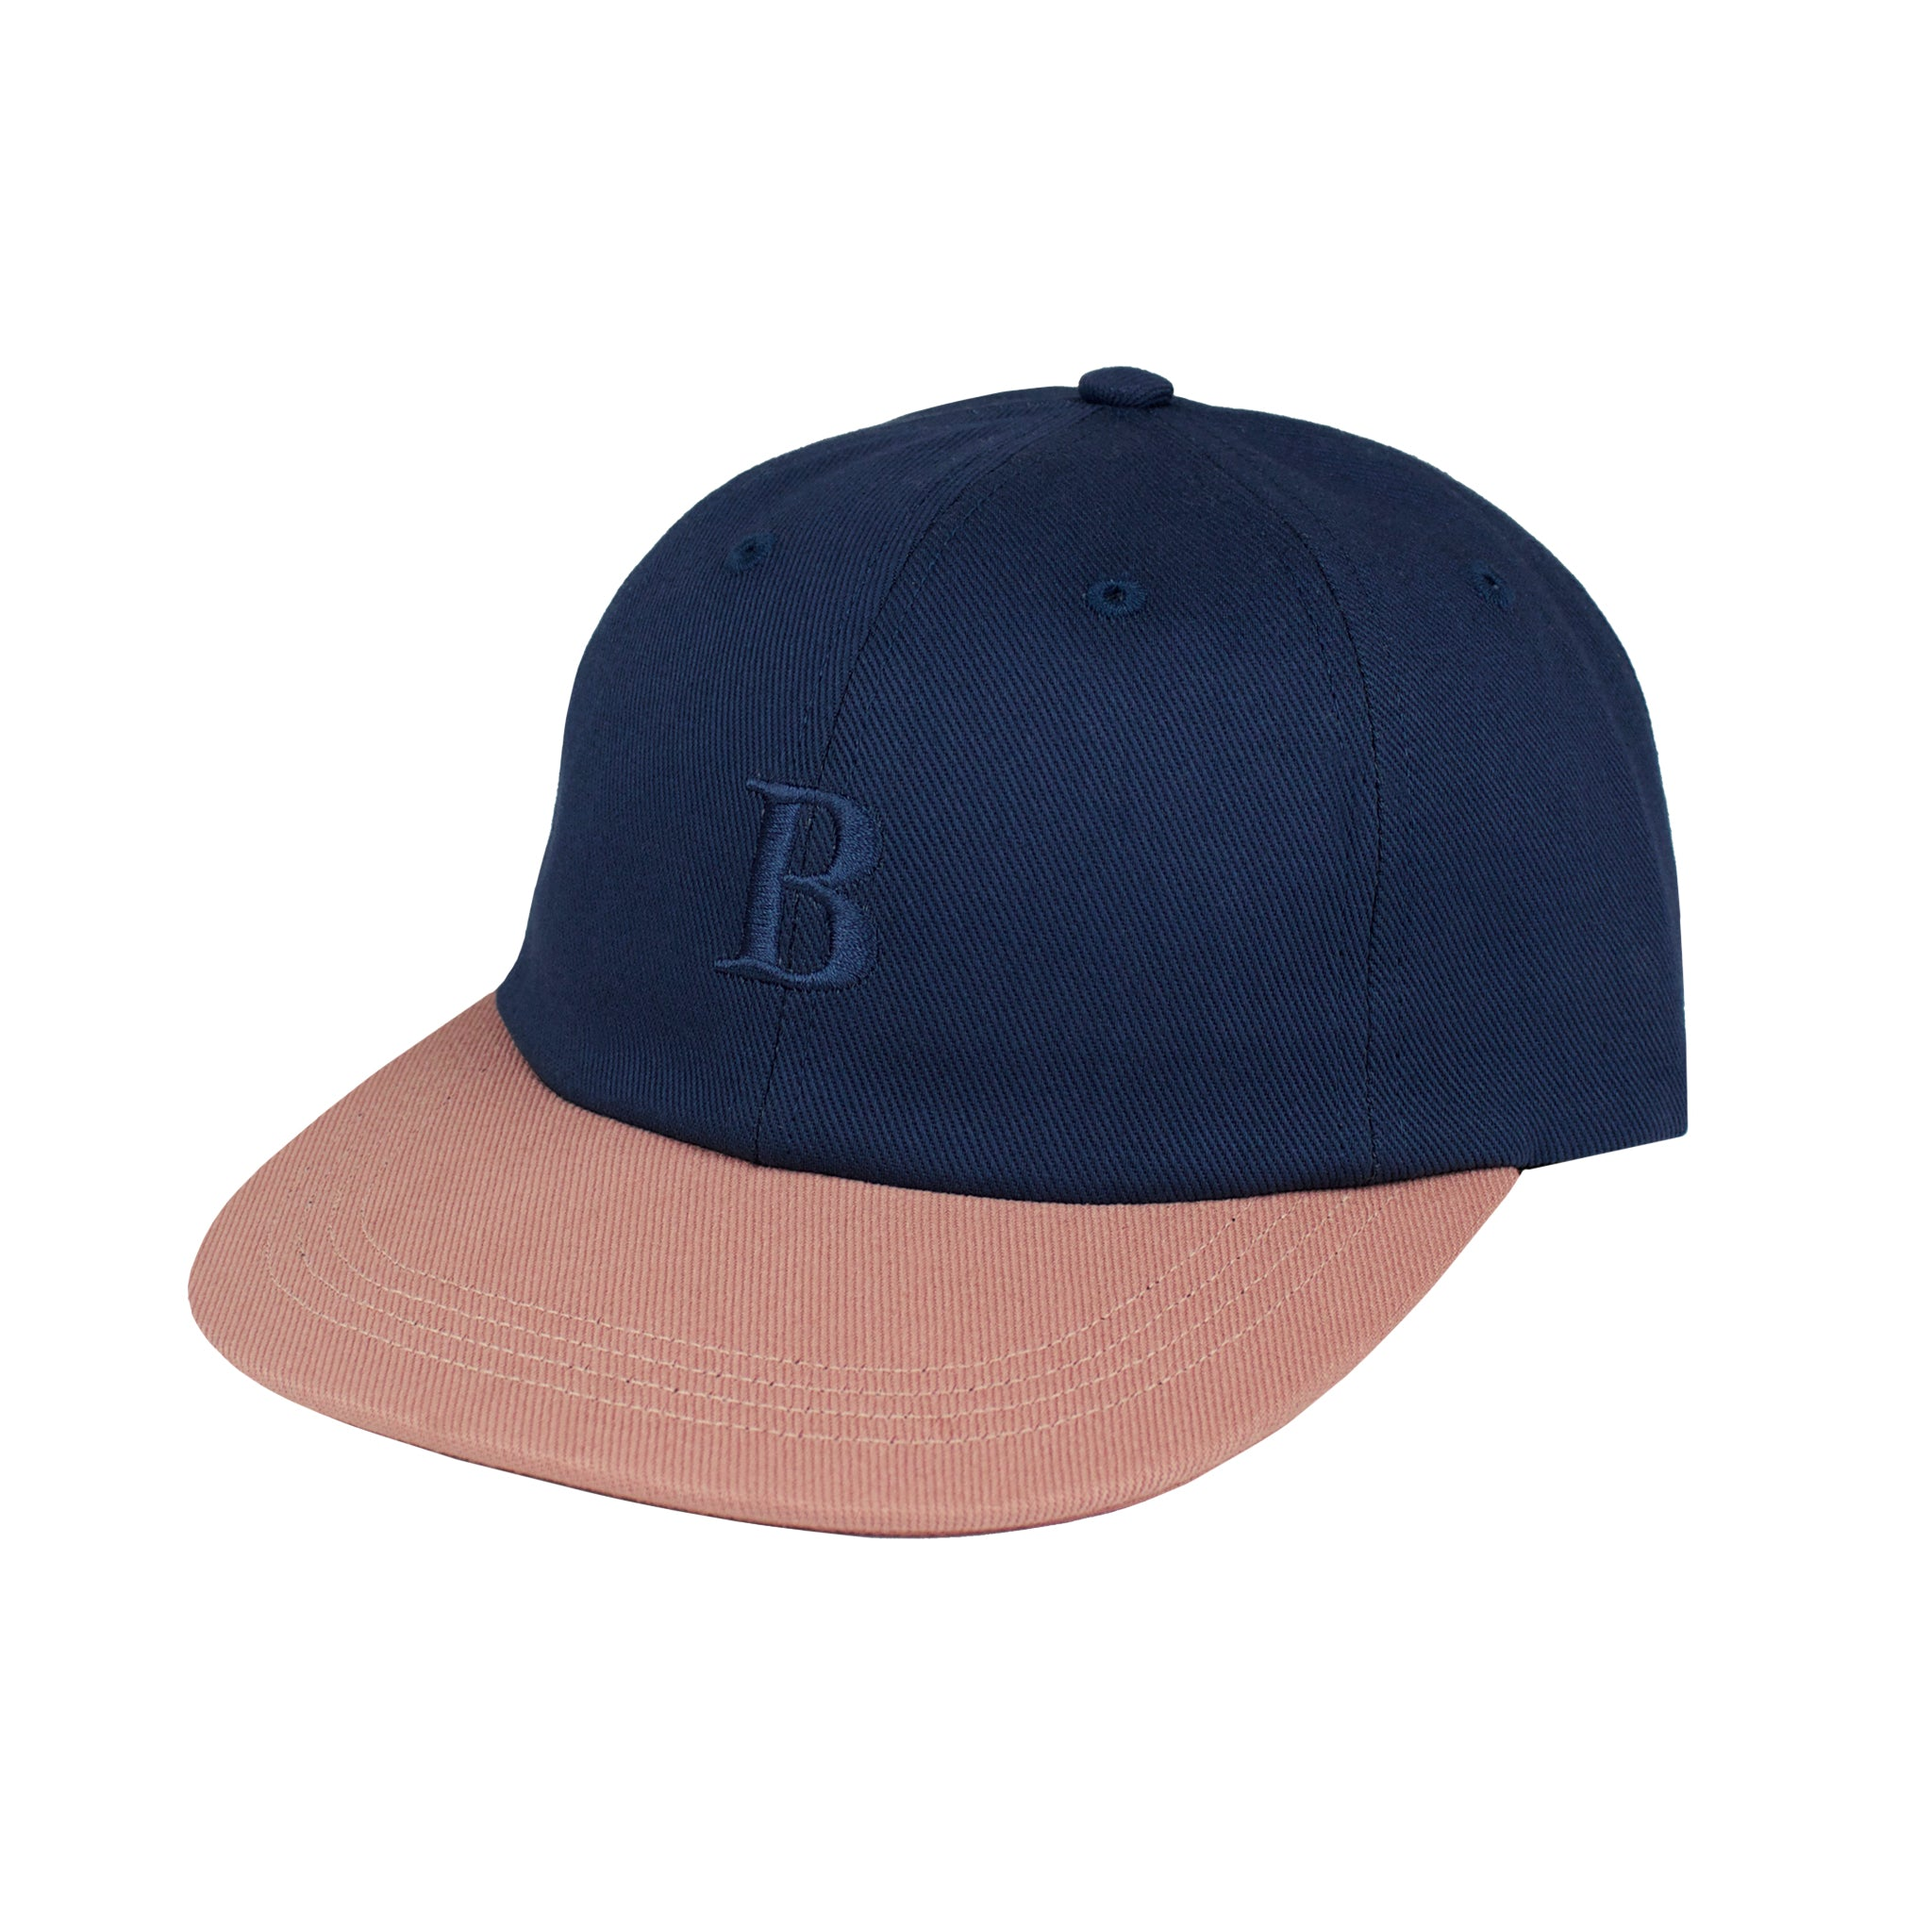 Borough 6 Panel - Smoke Blue/Coral